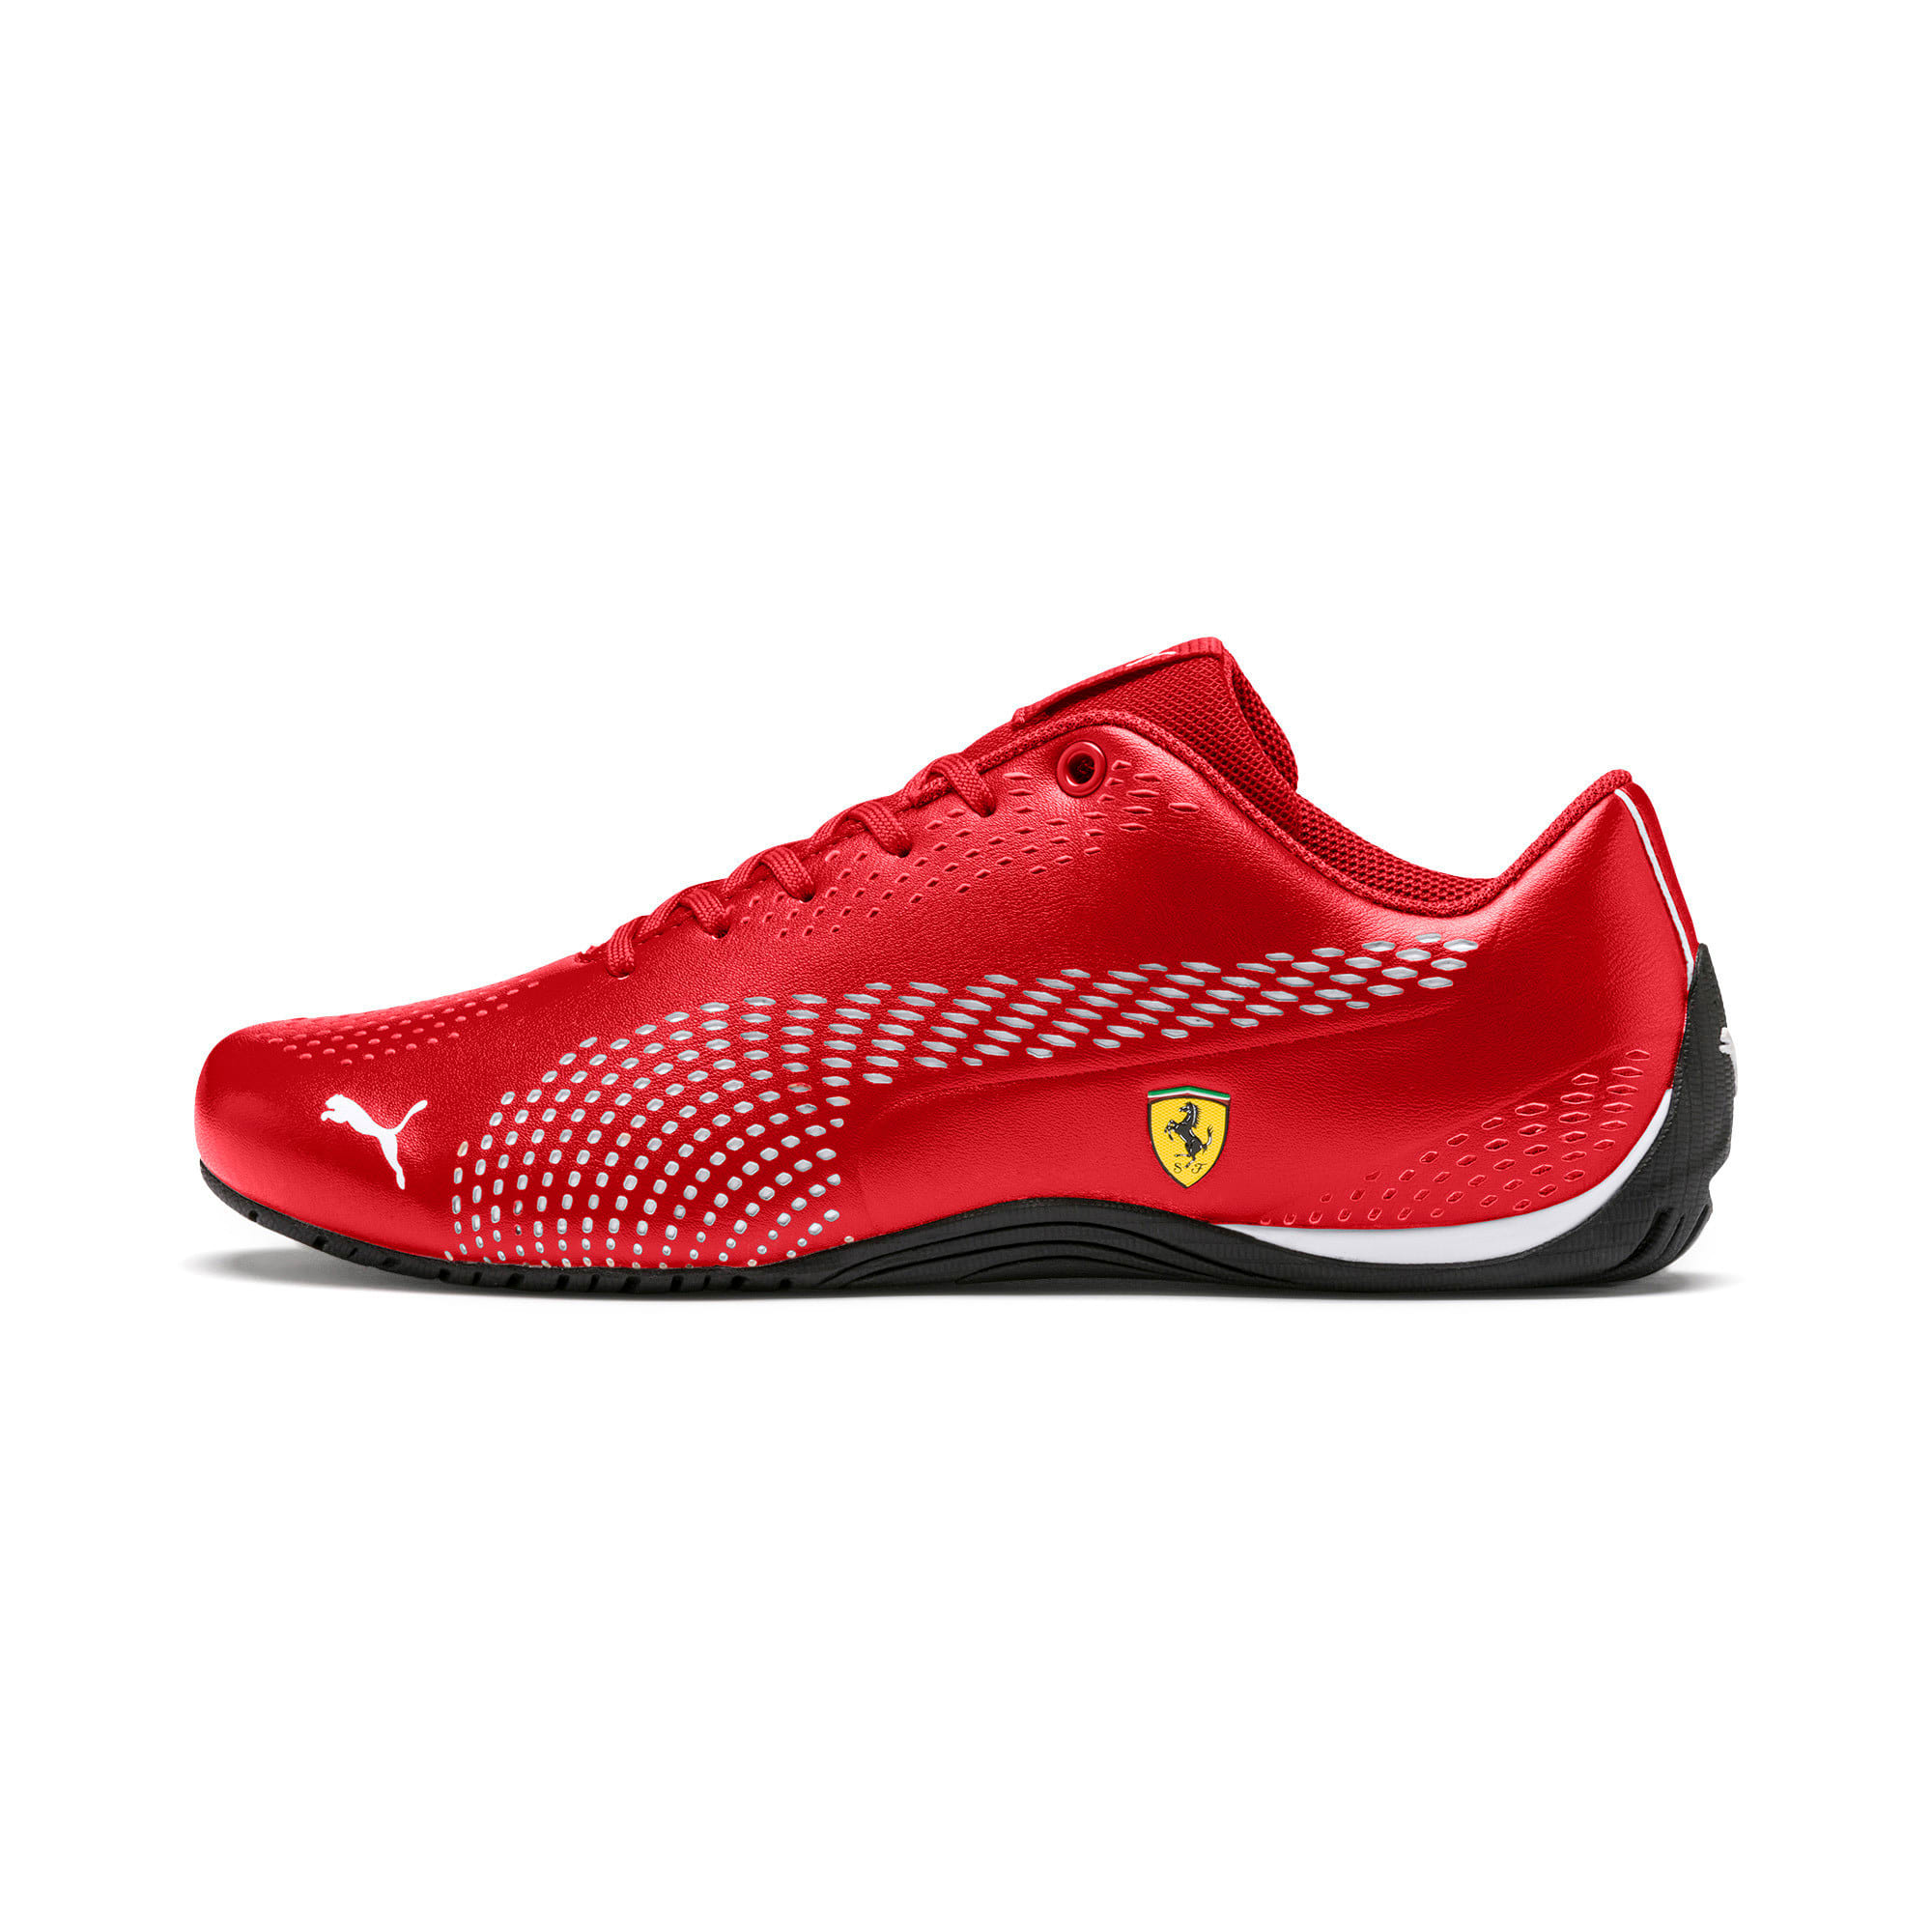 Thumbnail 1 of Ferrari Drift Cat 5 Ultra II Sneaker, Rosso Corsa-Puma White, medium